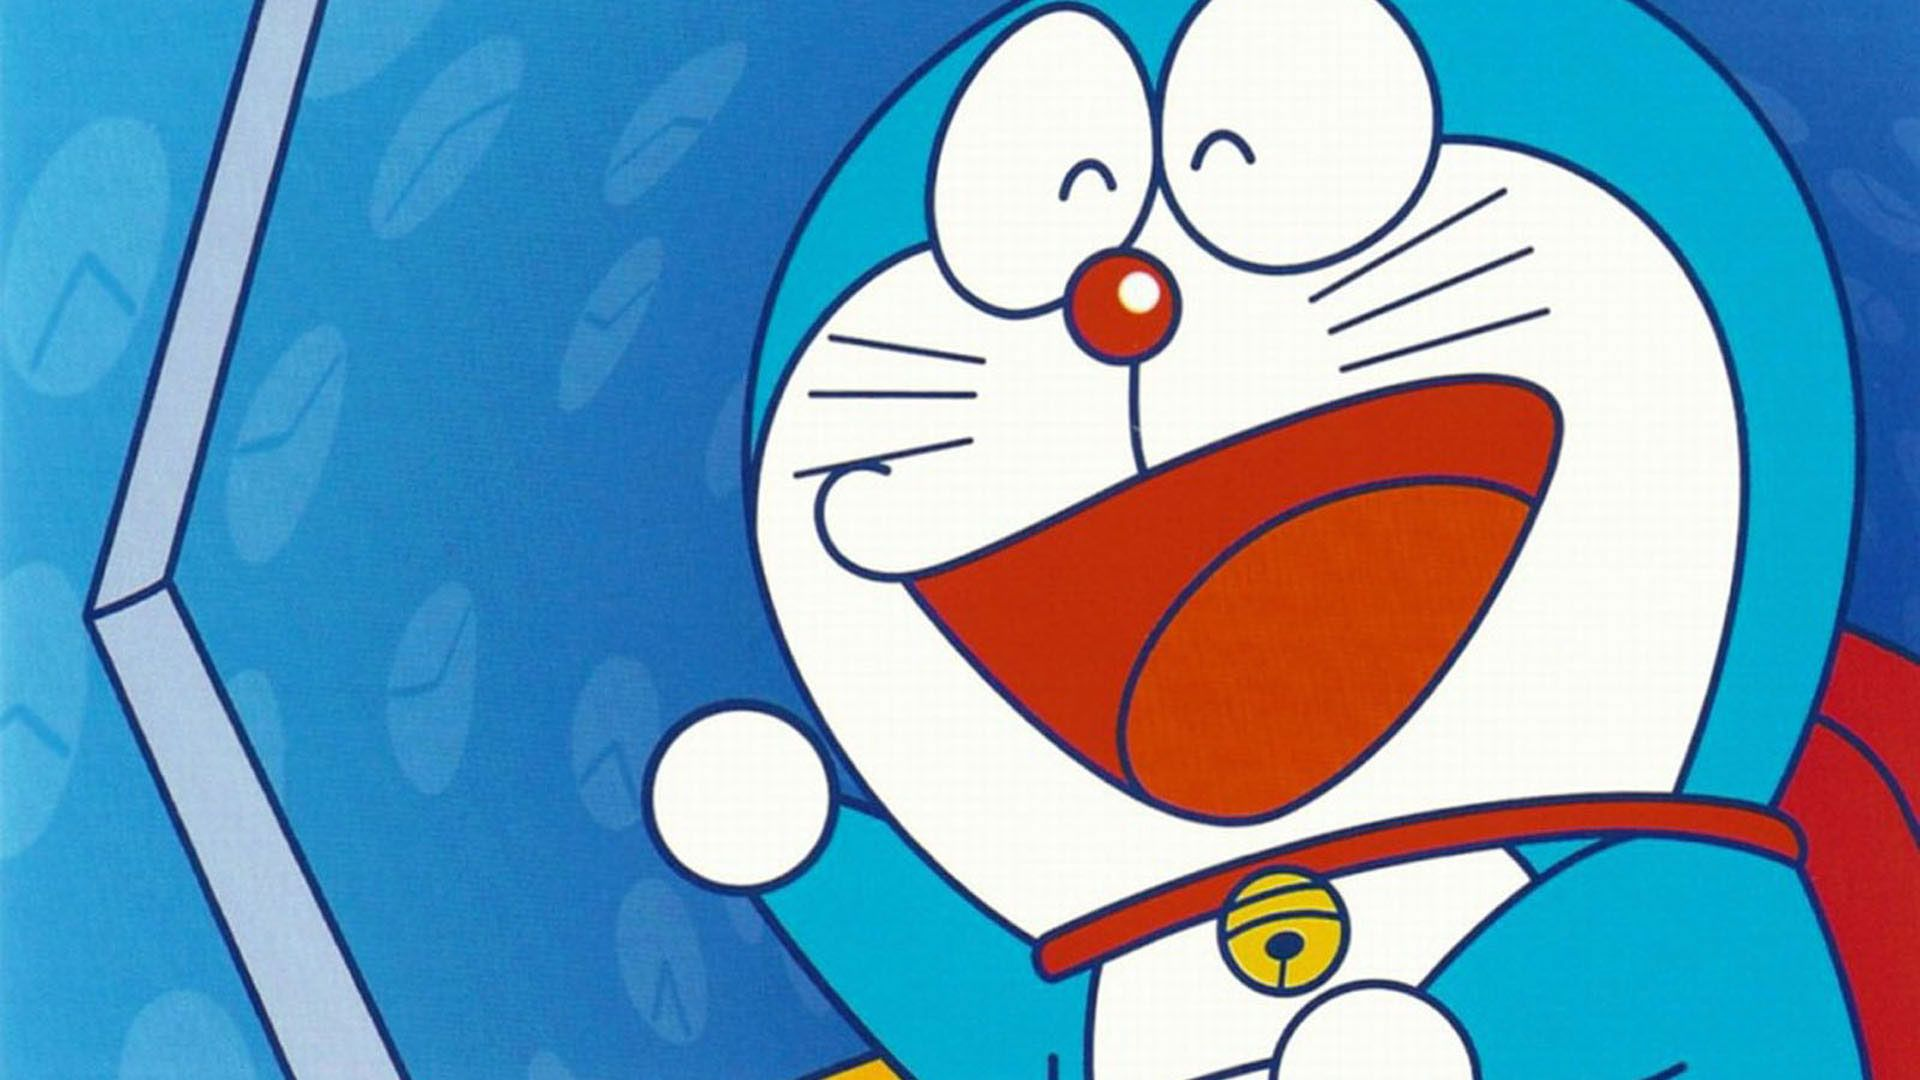 Gambar Doraemon Movies Doraemon Doraemon Wallpapers Cartoon